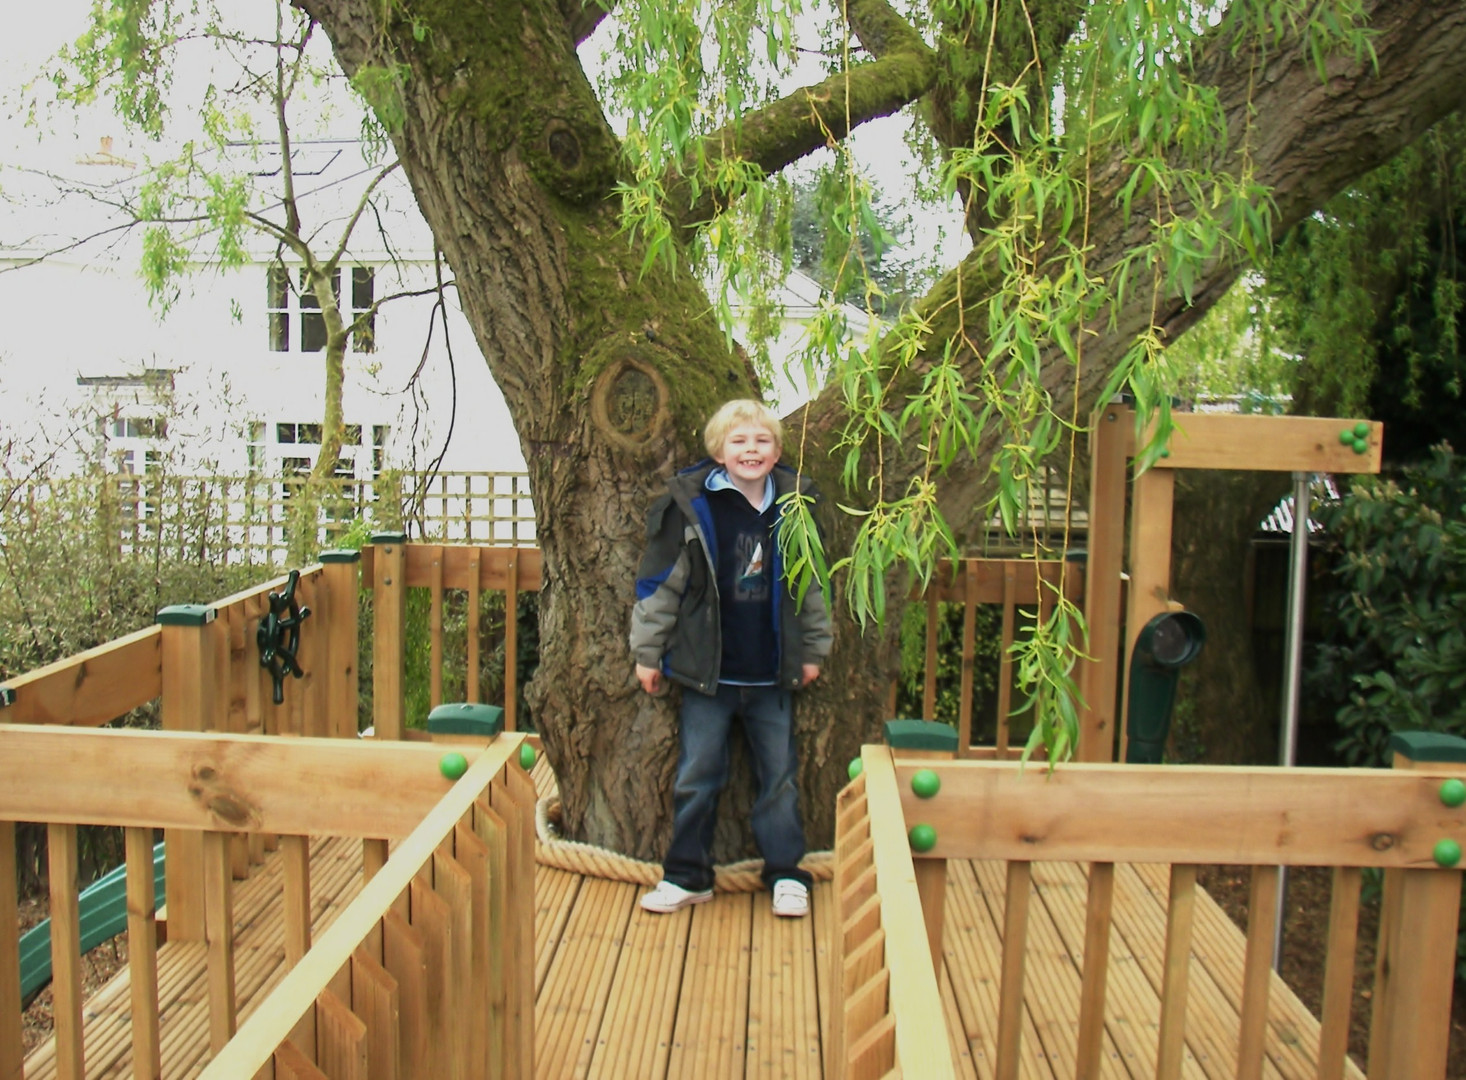 Play Tower - Surrey 2011 - Deck view of highe